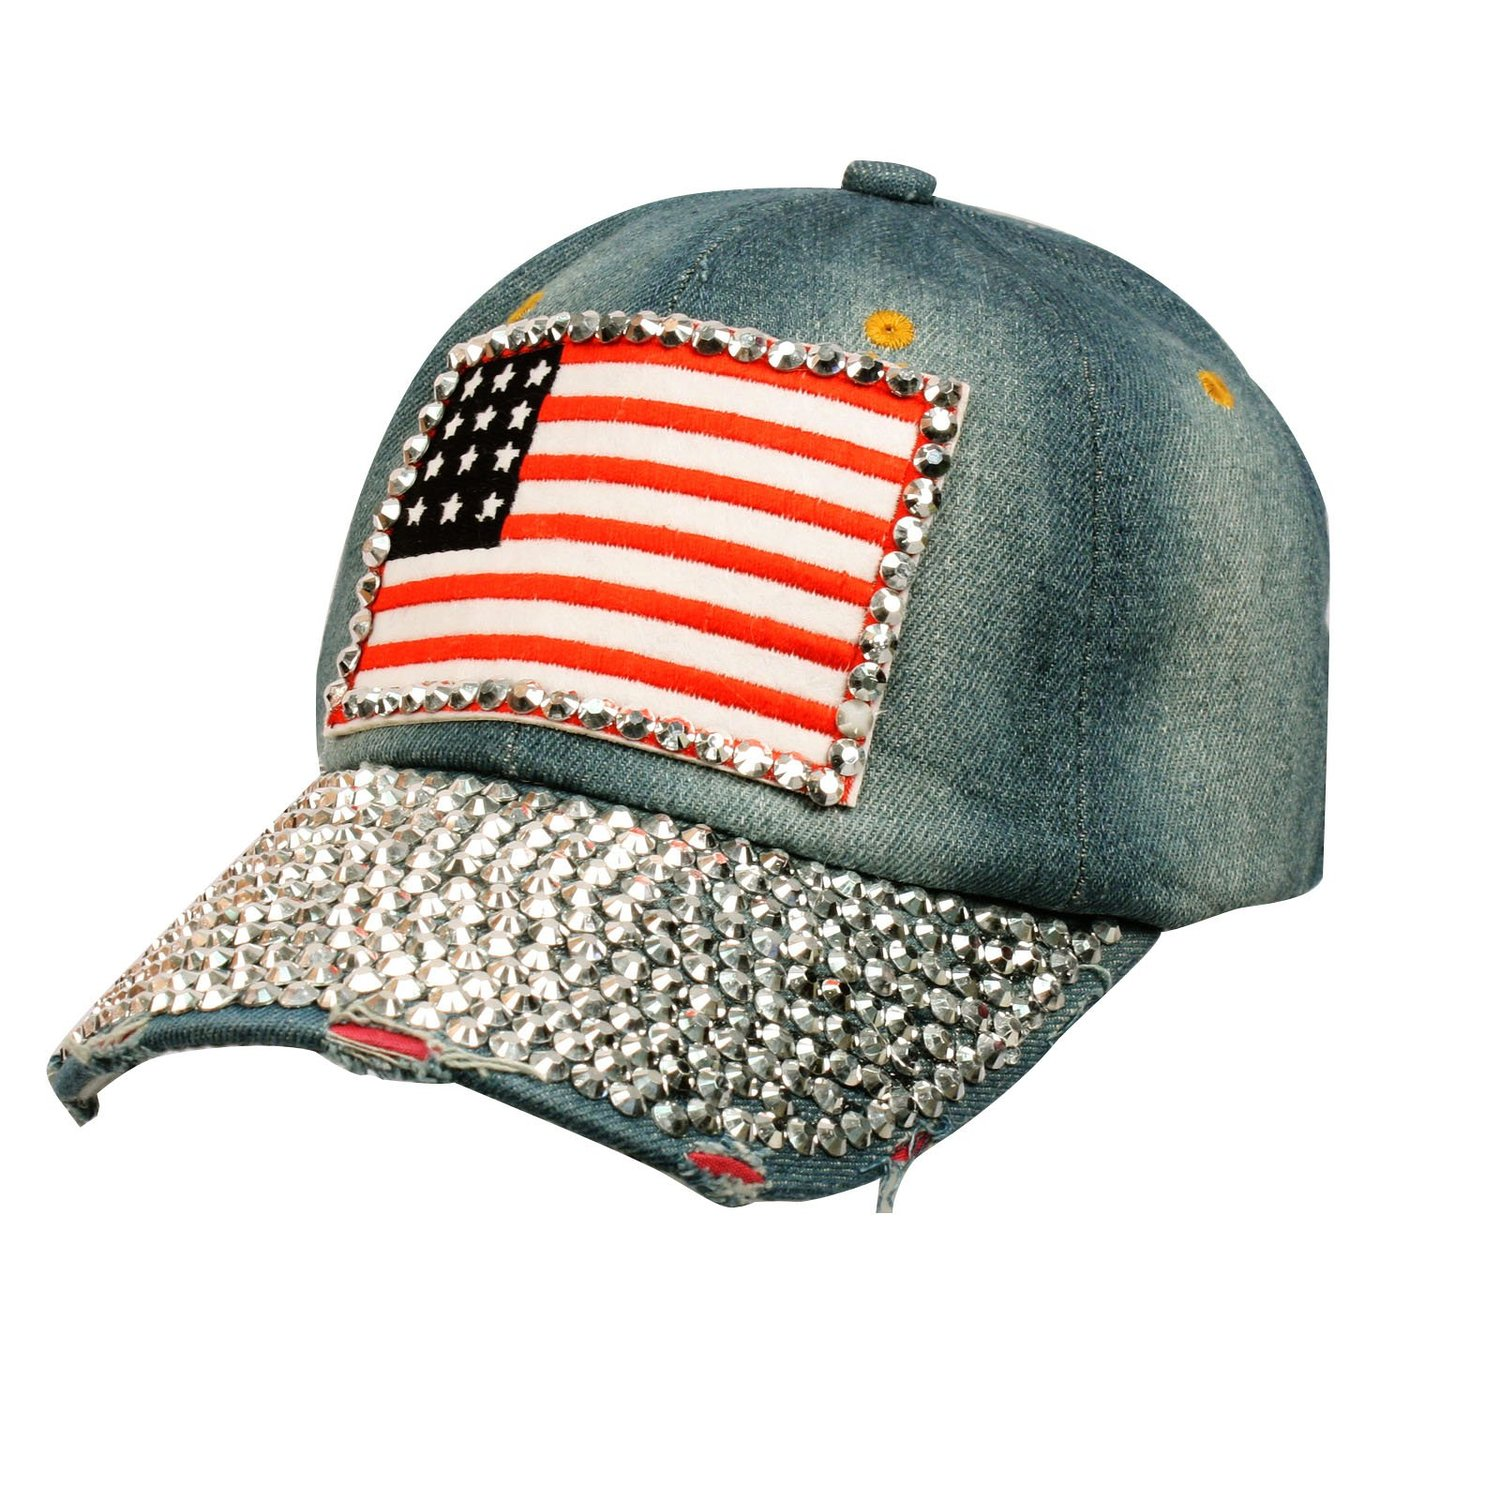 Patriotic usa flag distresed denim jean bling bling adjust baseball cap hat blue at amazon men's clothing store: